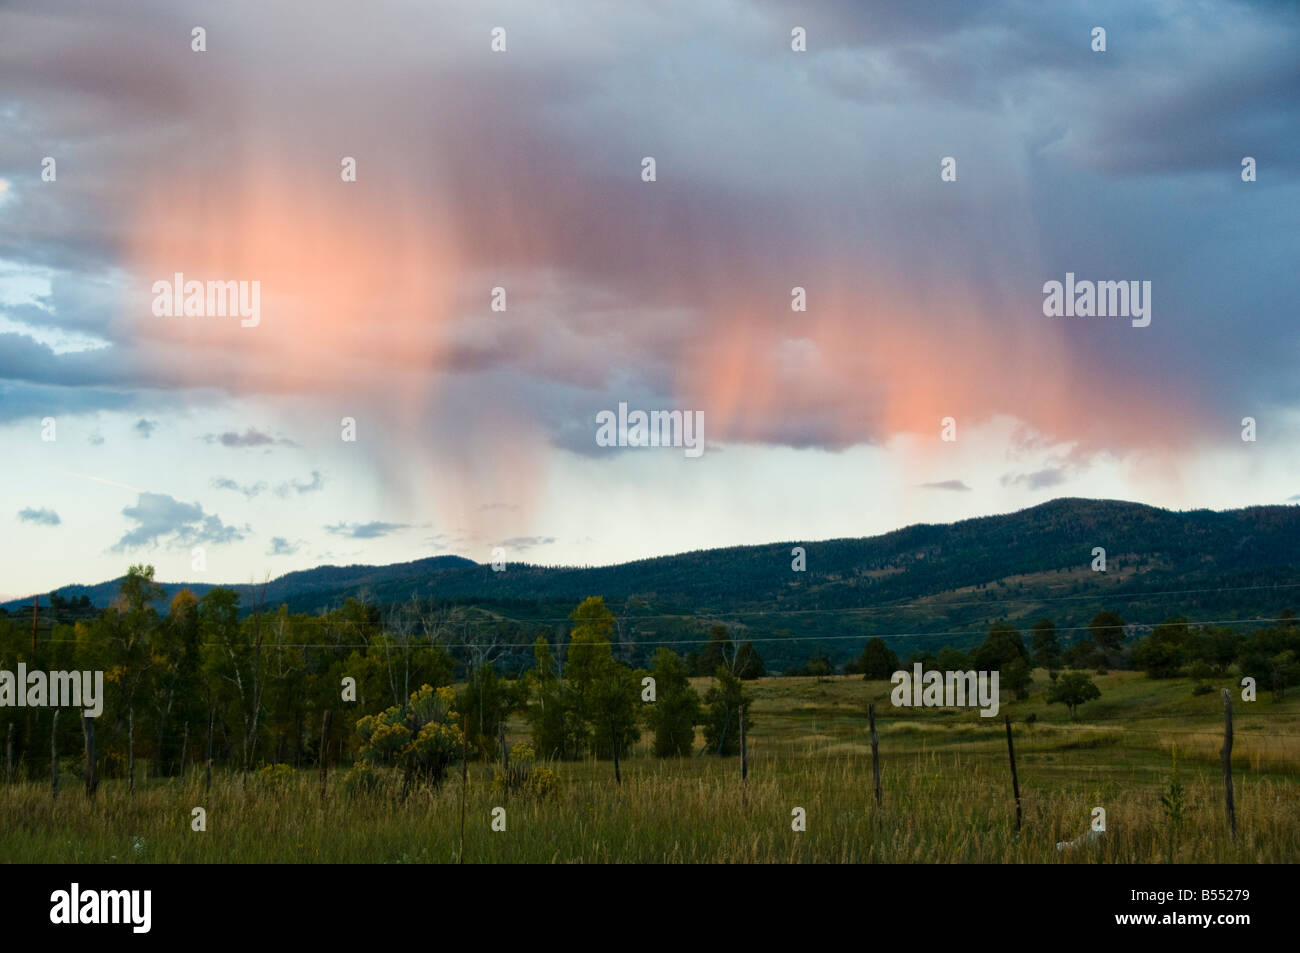 Clouds over sky in New Mexico Stock Photo